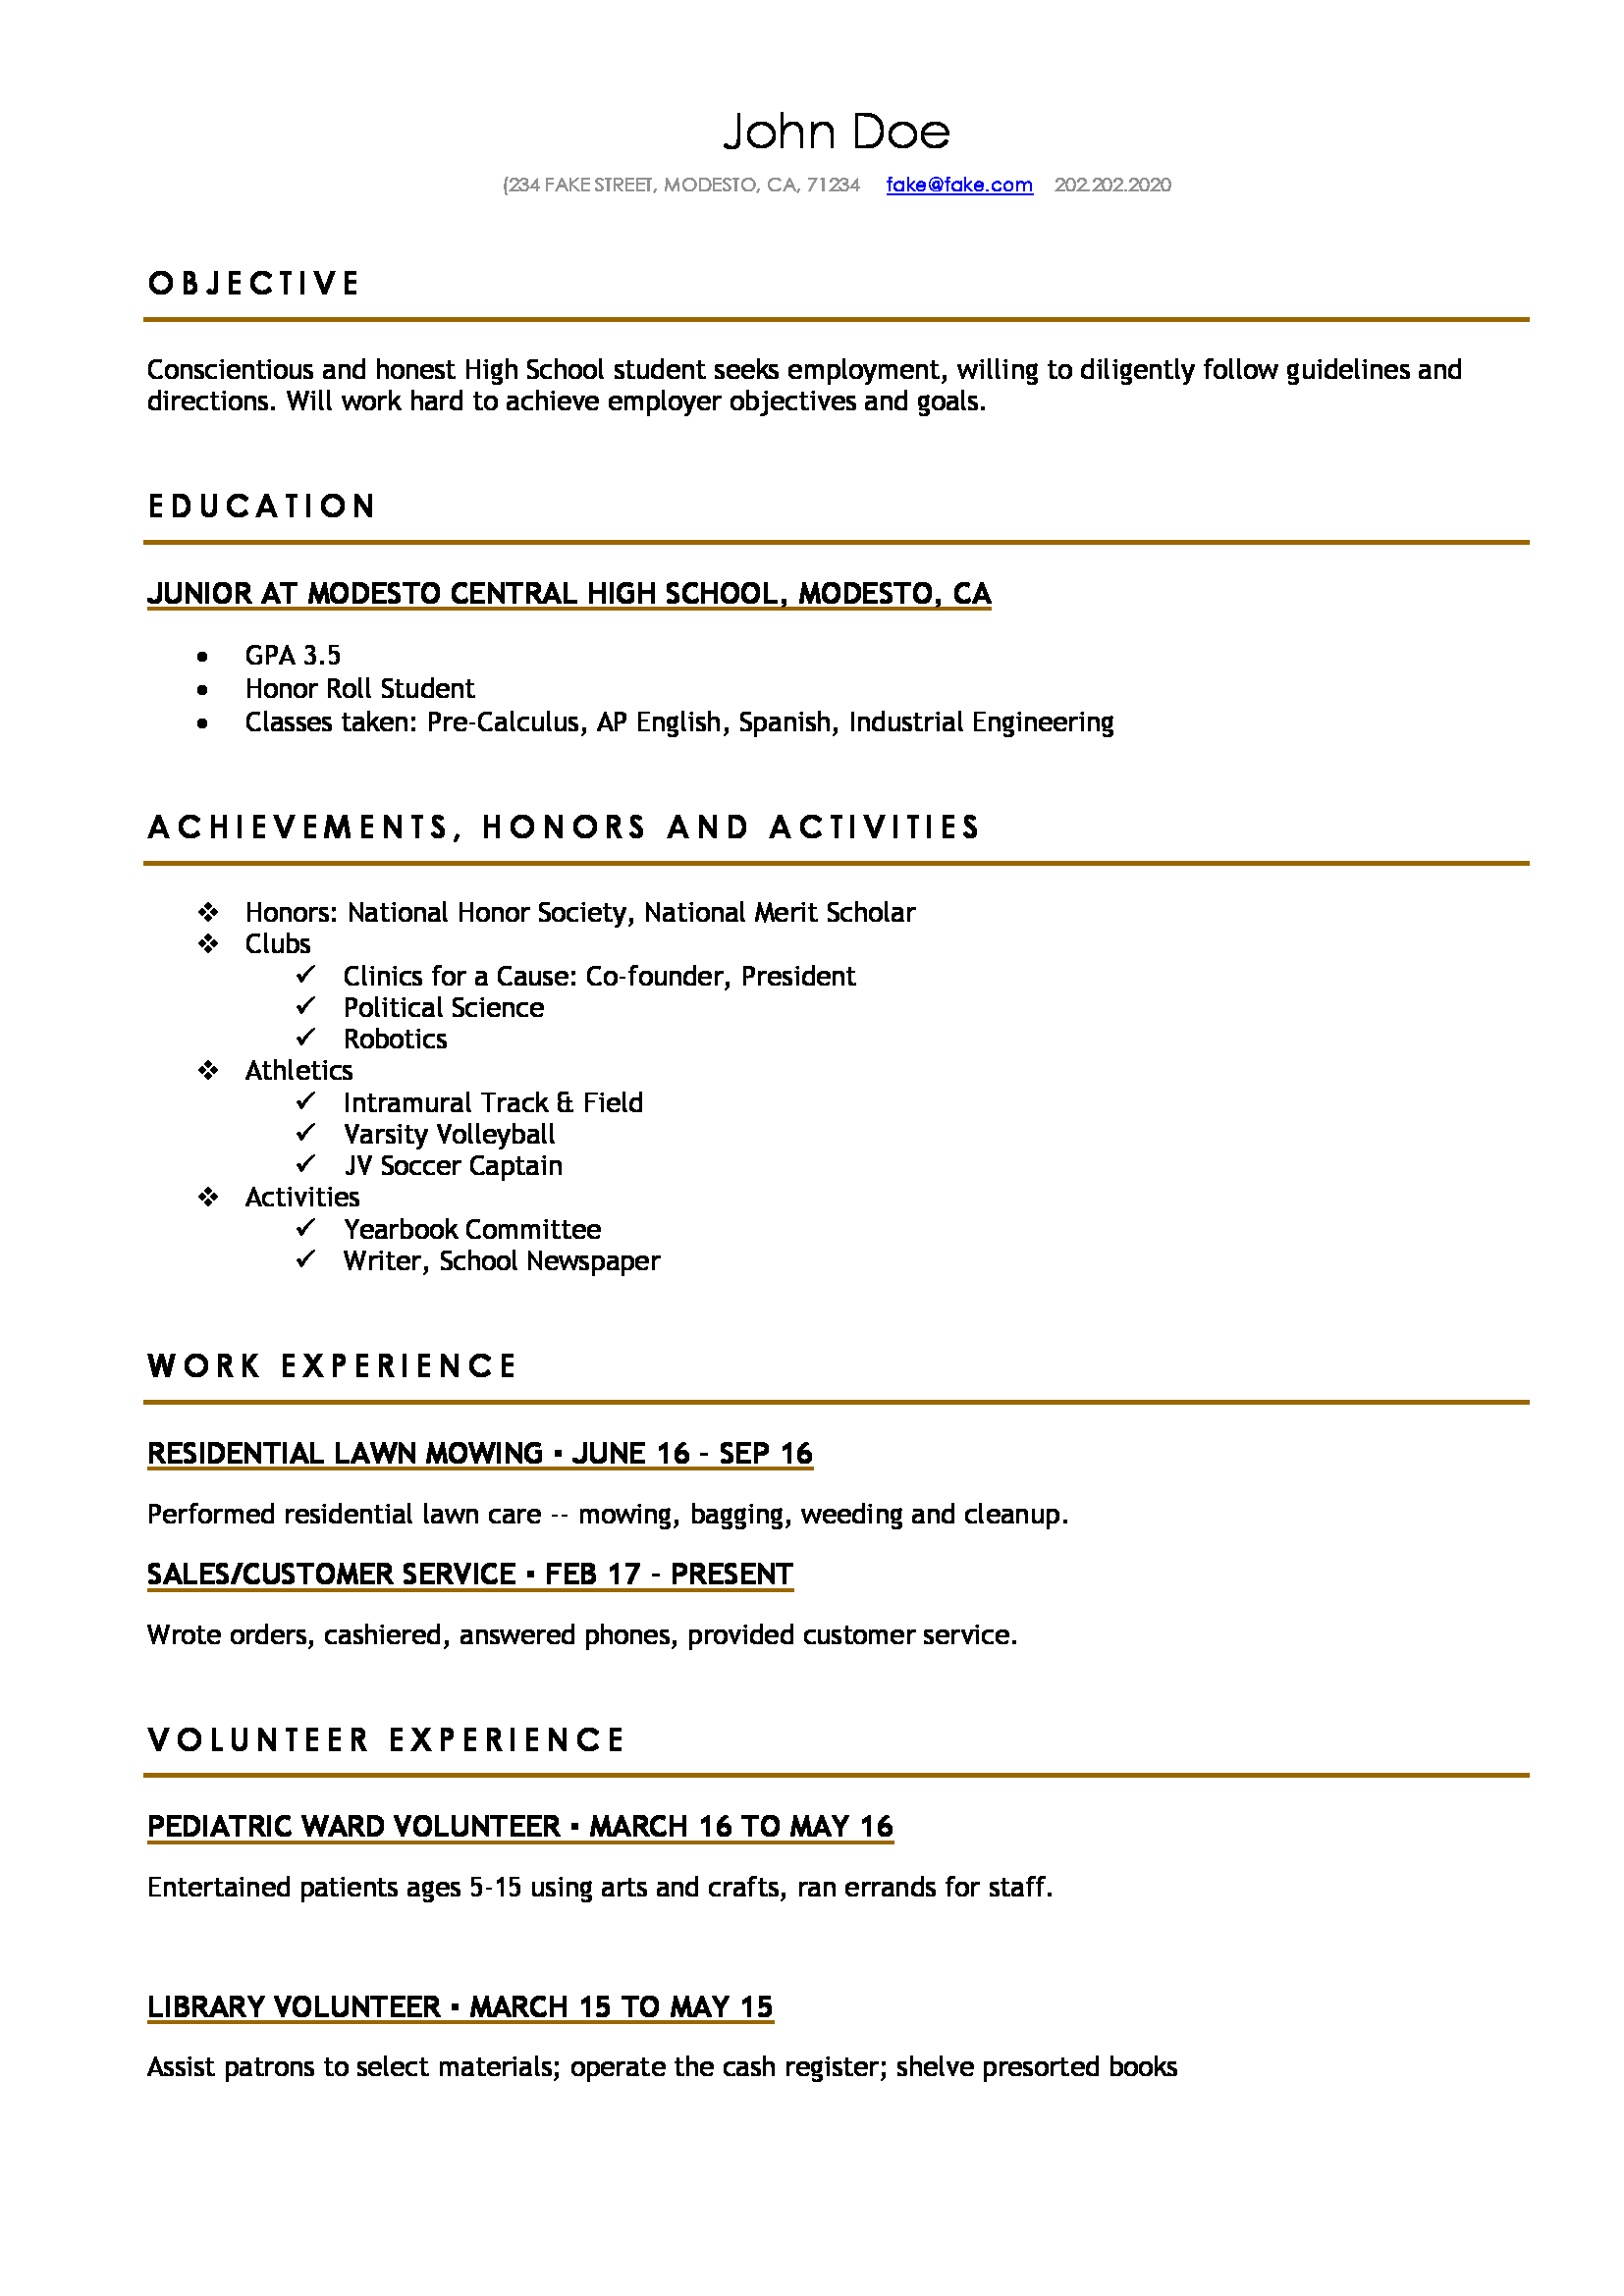 Resume Creator For Students High School 3 Resume Templates Pinterest Resume